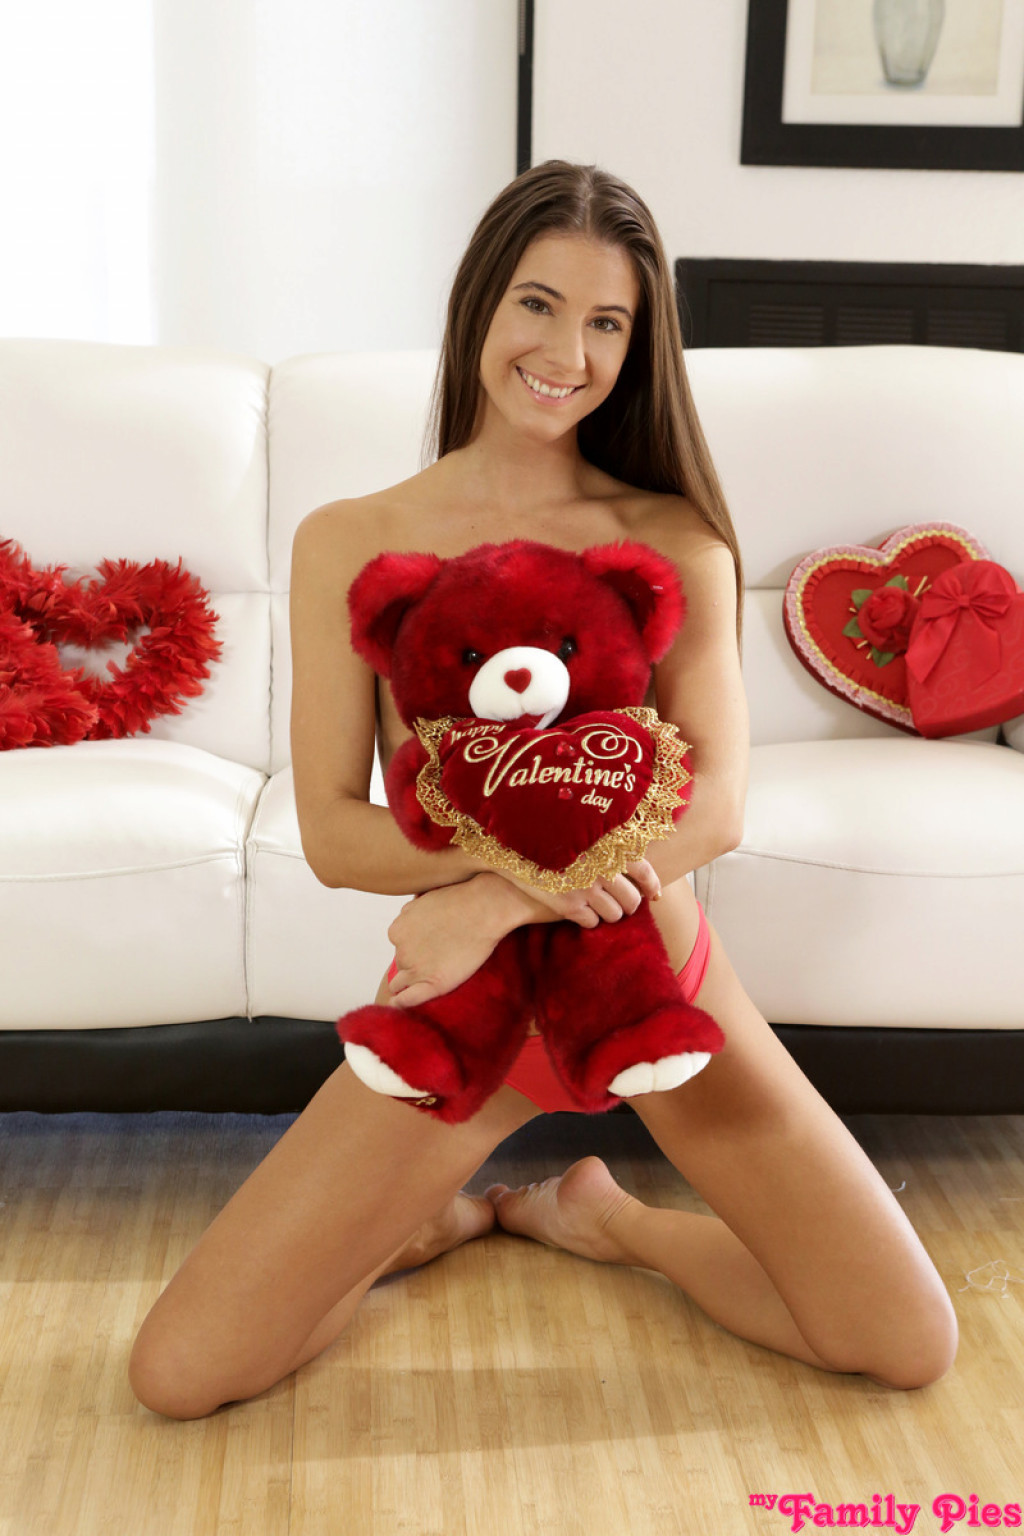 Valentines Day Nude  Hot Girl Hd Wallpaper-7561